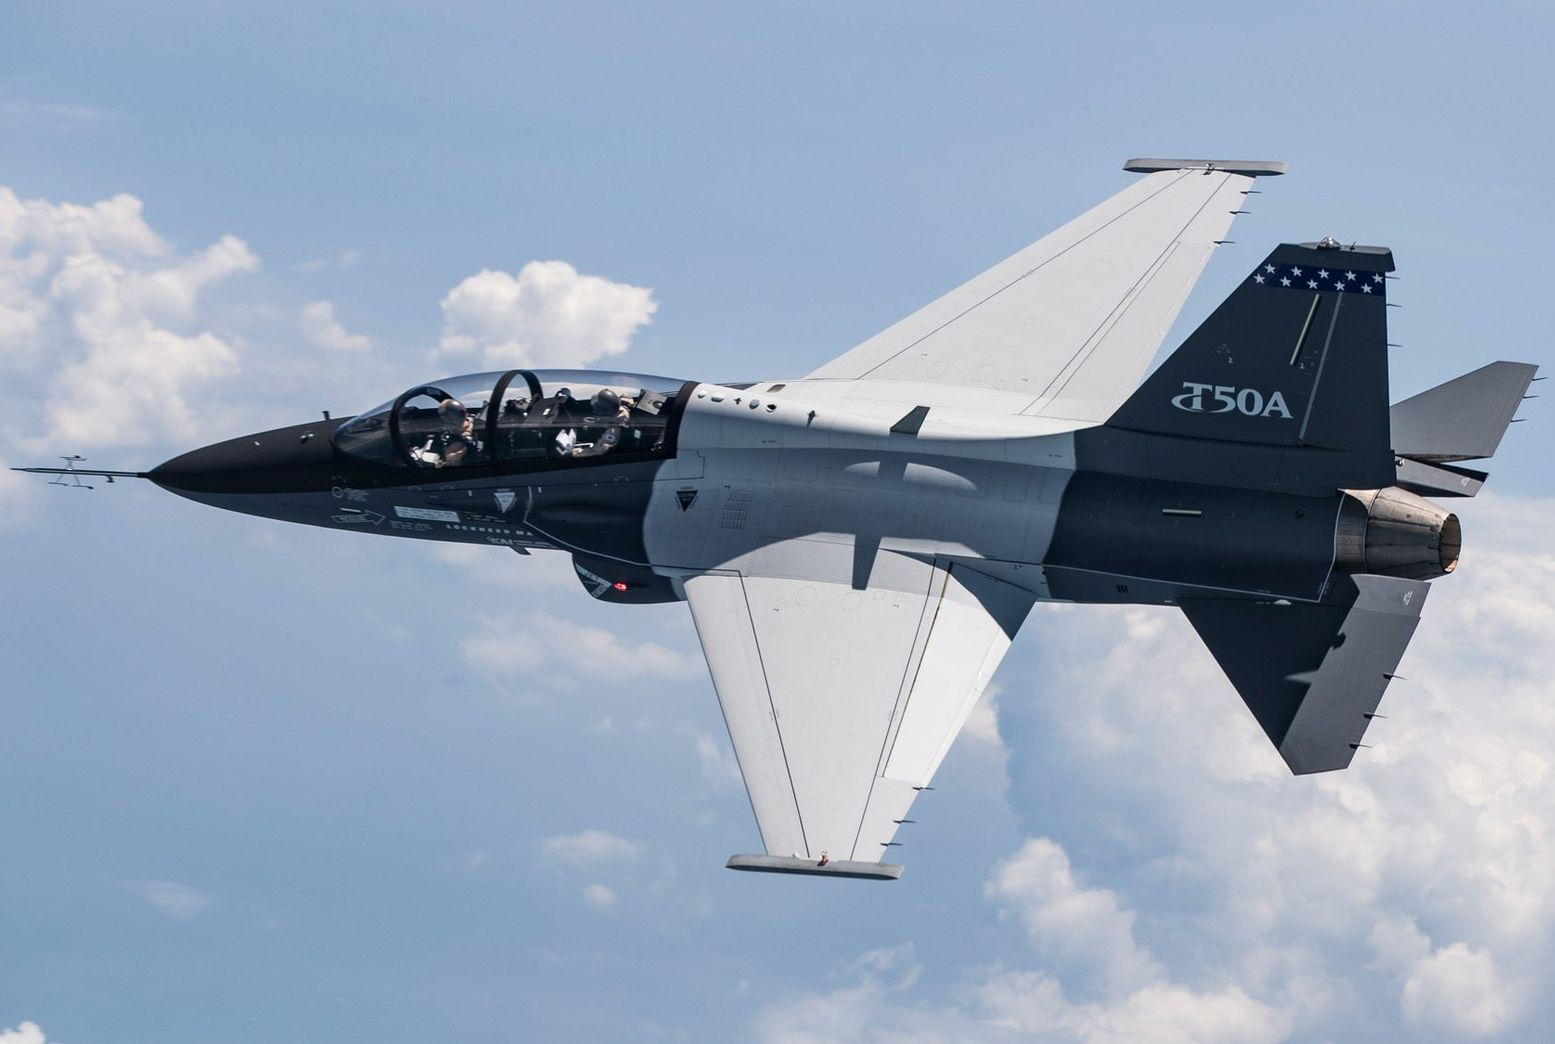 Shocking: Lockheed Martin Will Have the T-50A Ready for the Air Force